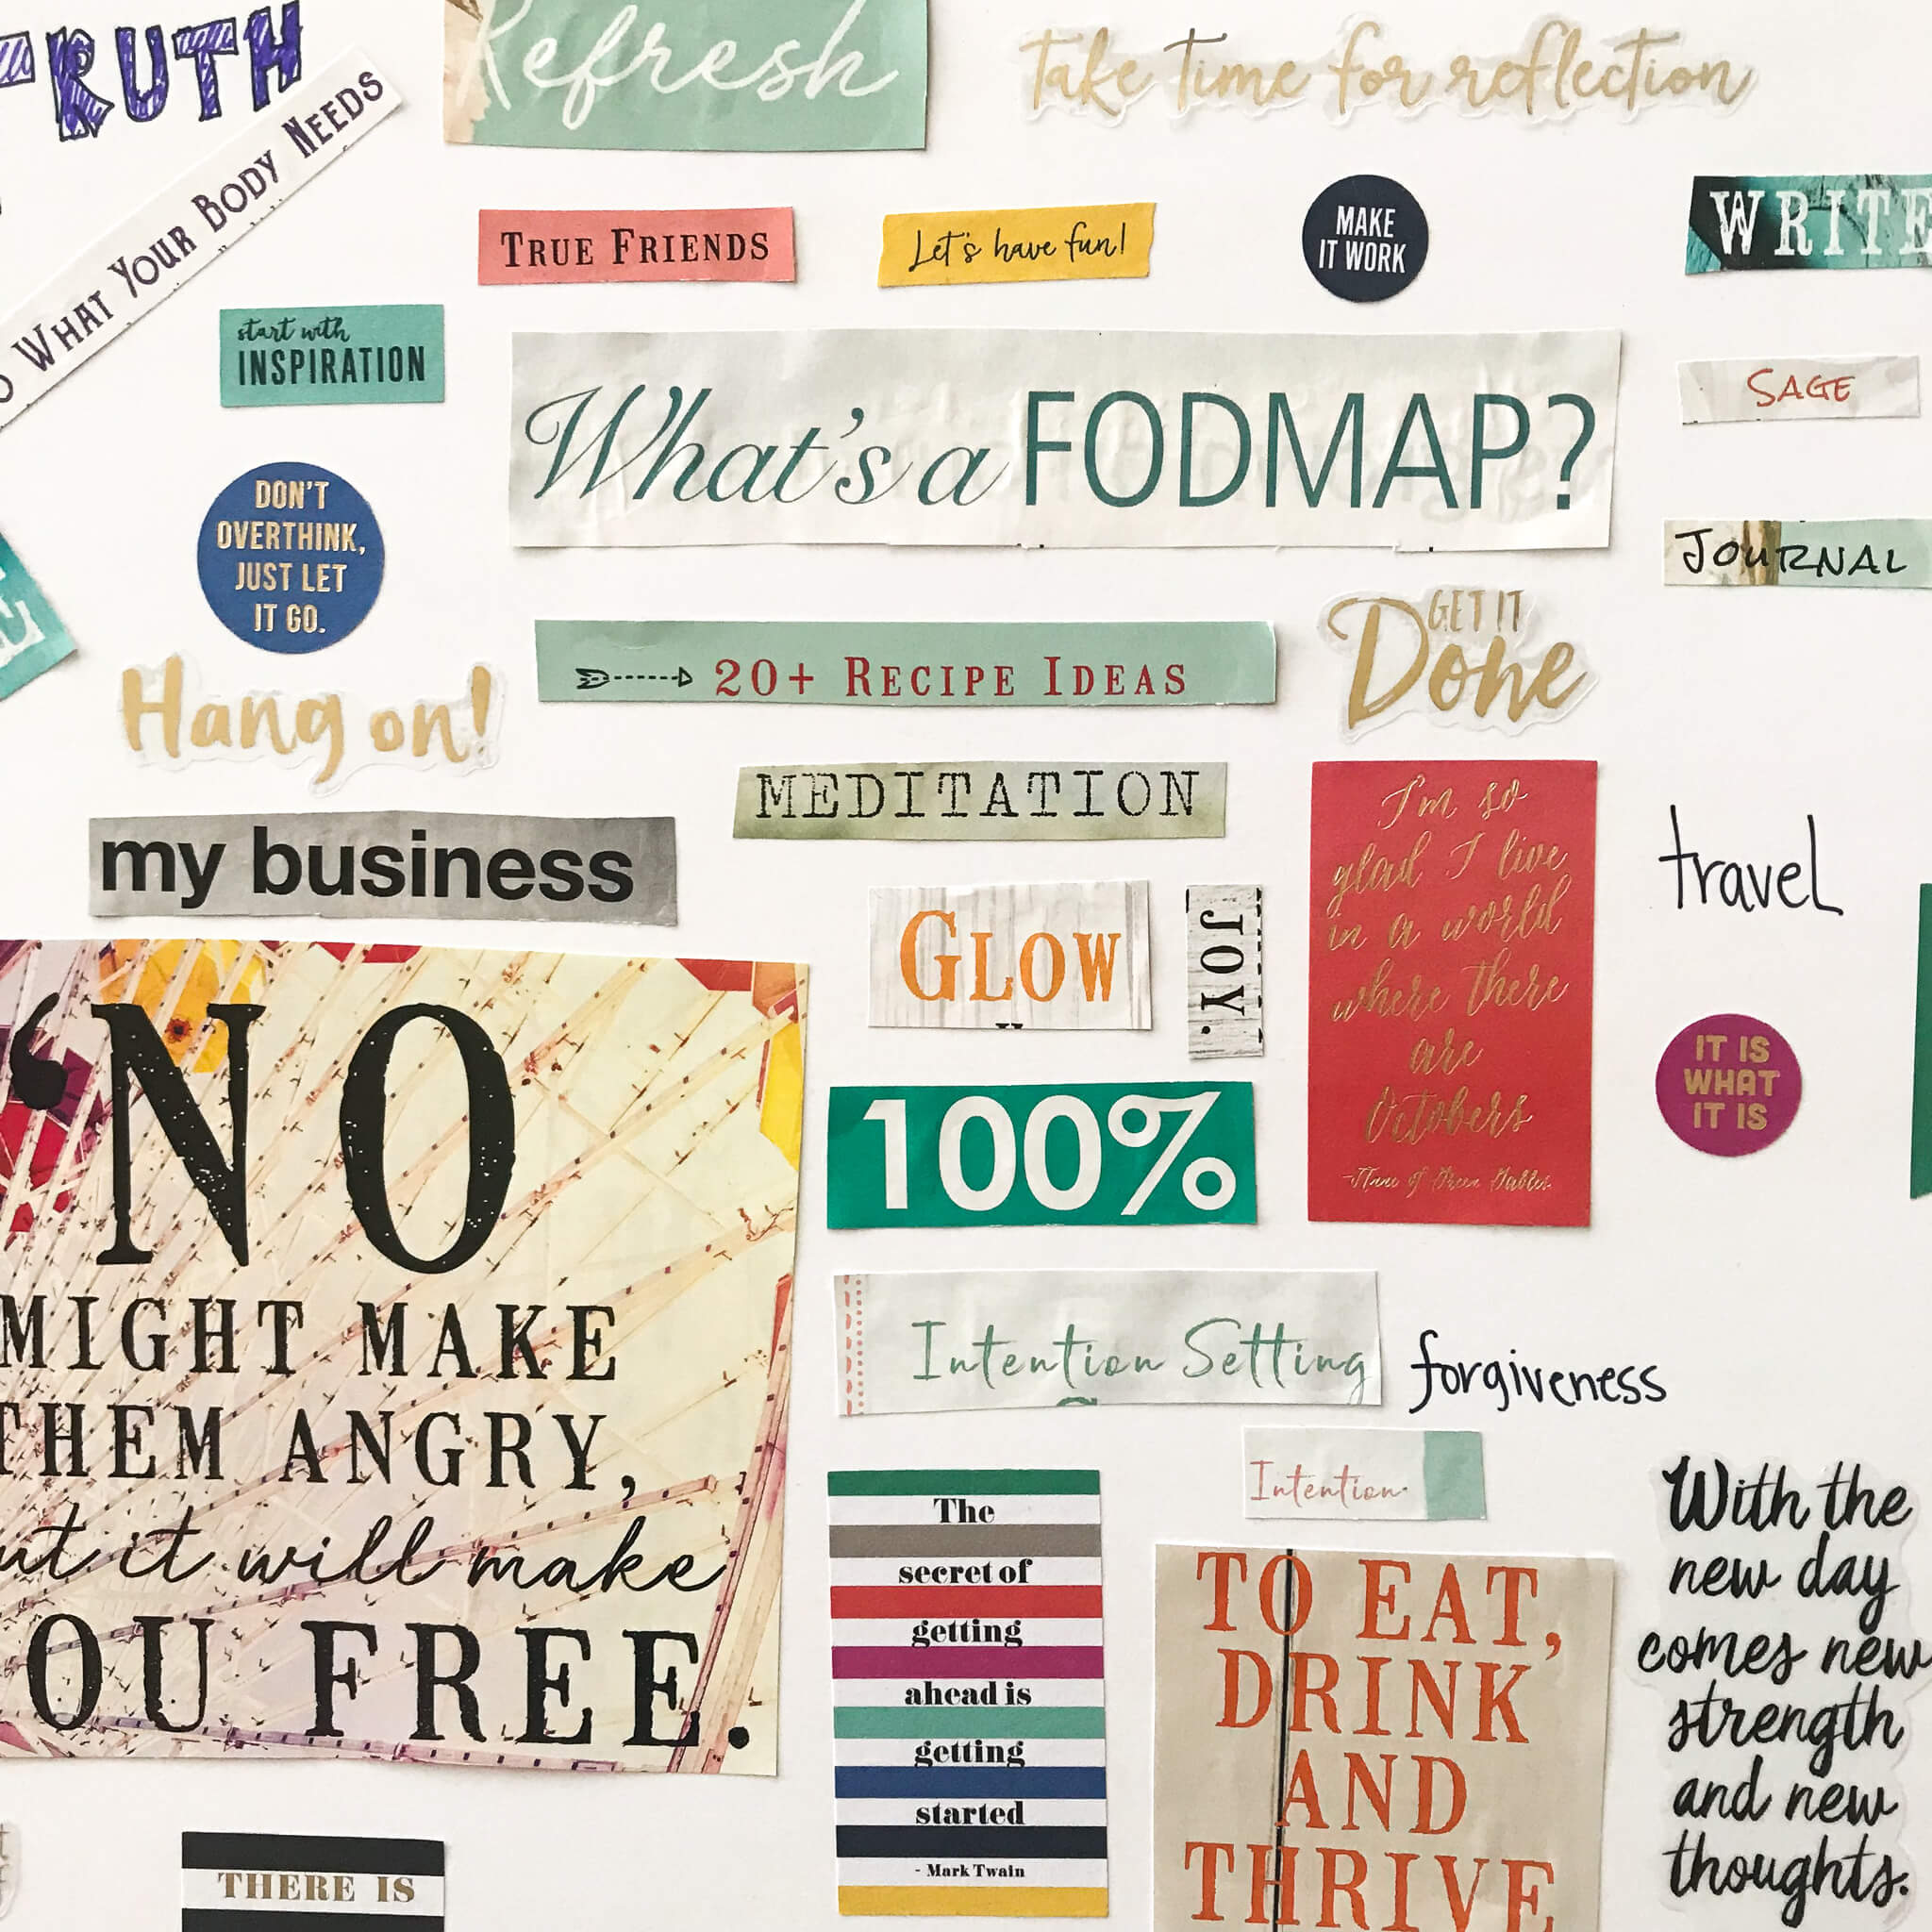 Living with Intention www.sarahkayhoffman.com #goals #mompreneur #intention #visionboard intentions